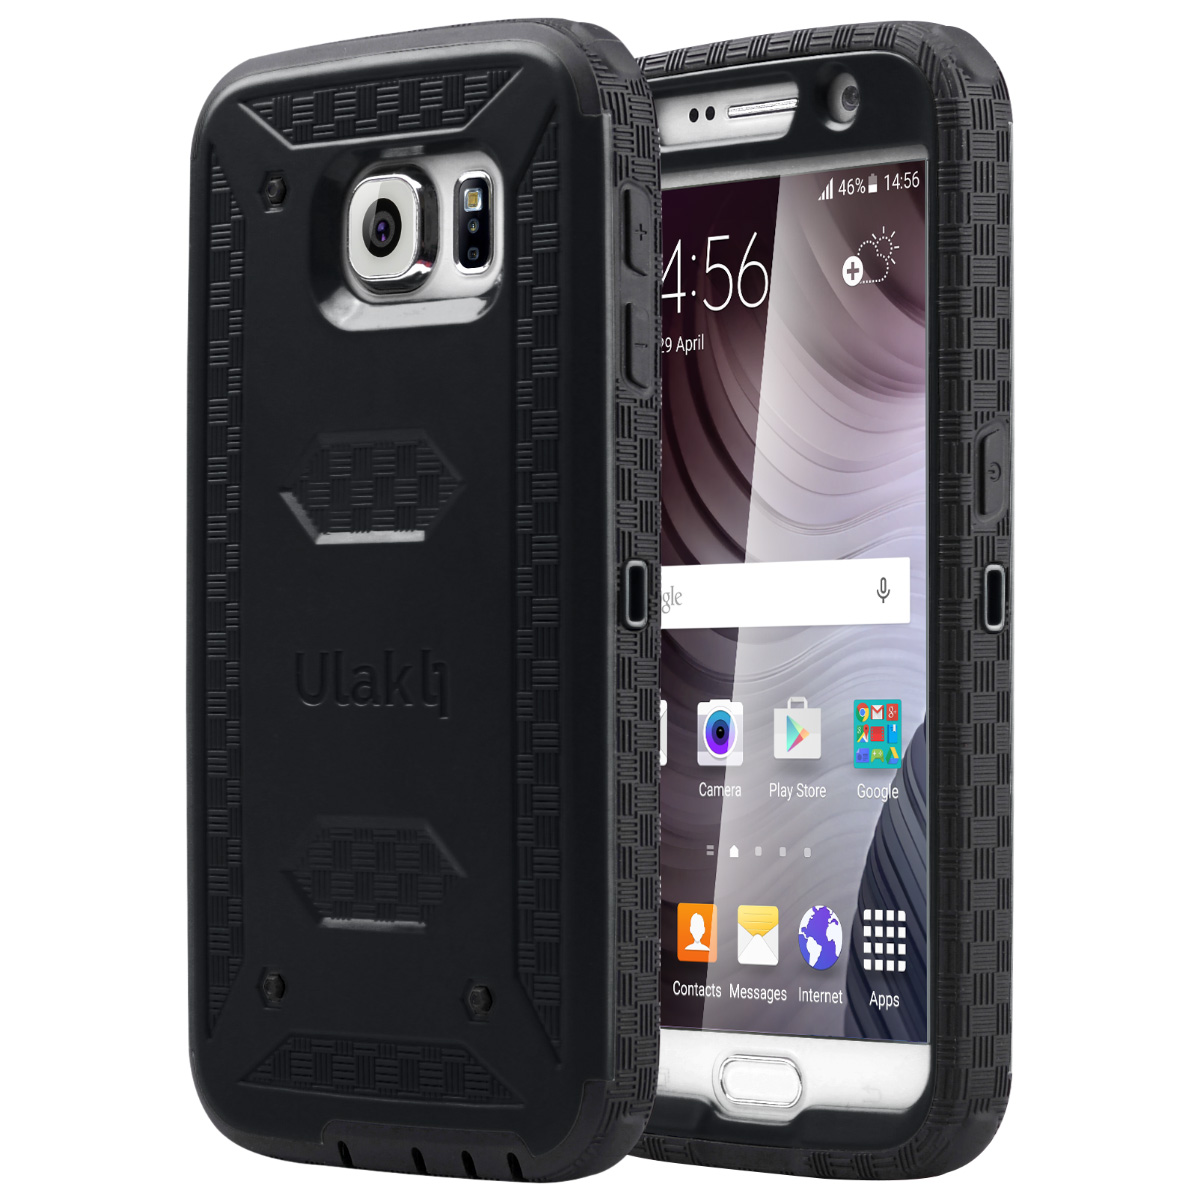 ULAK S6 Case, Galaxy S6 Case, Hybrid KNOX ARMOR Heavy Duty Shockproof Dual Layer Protective Case for Samsung Galaxy S6 Device